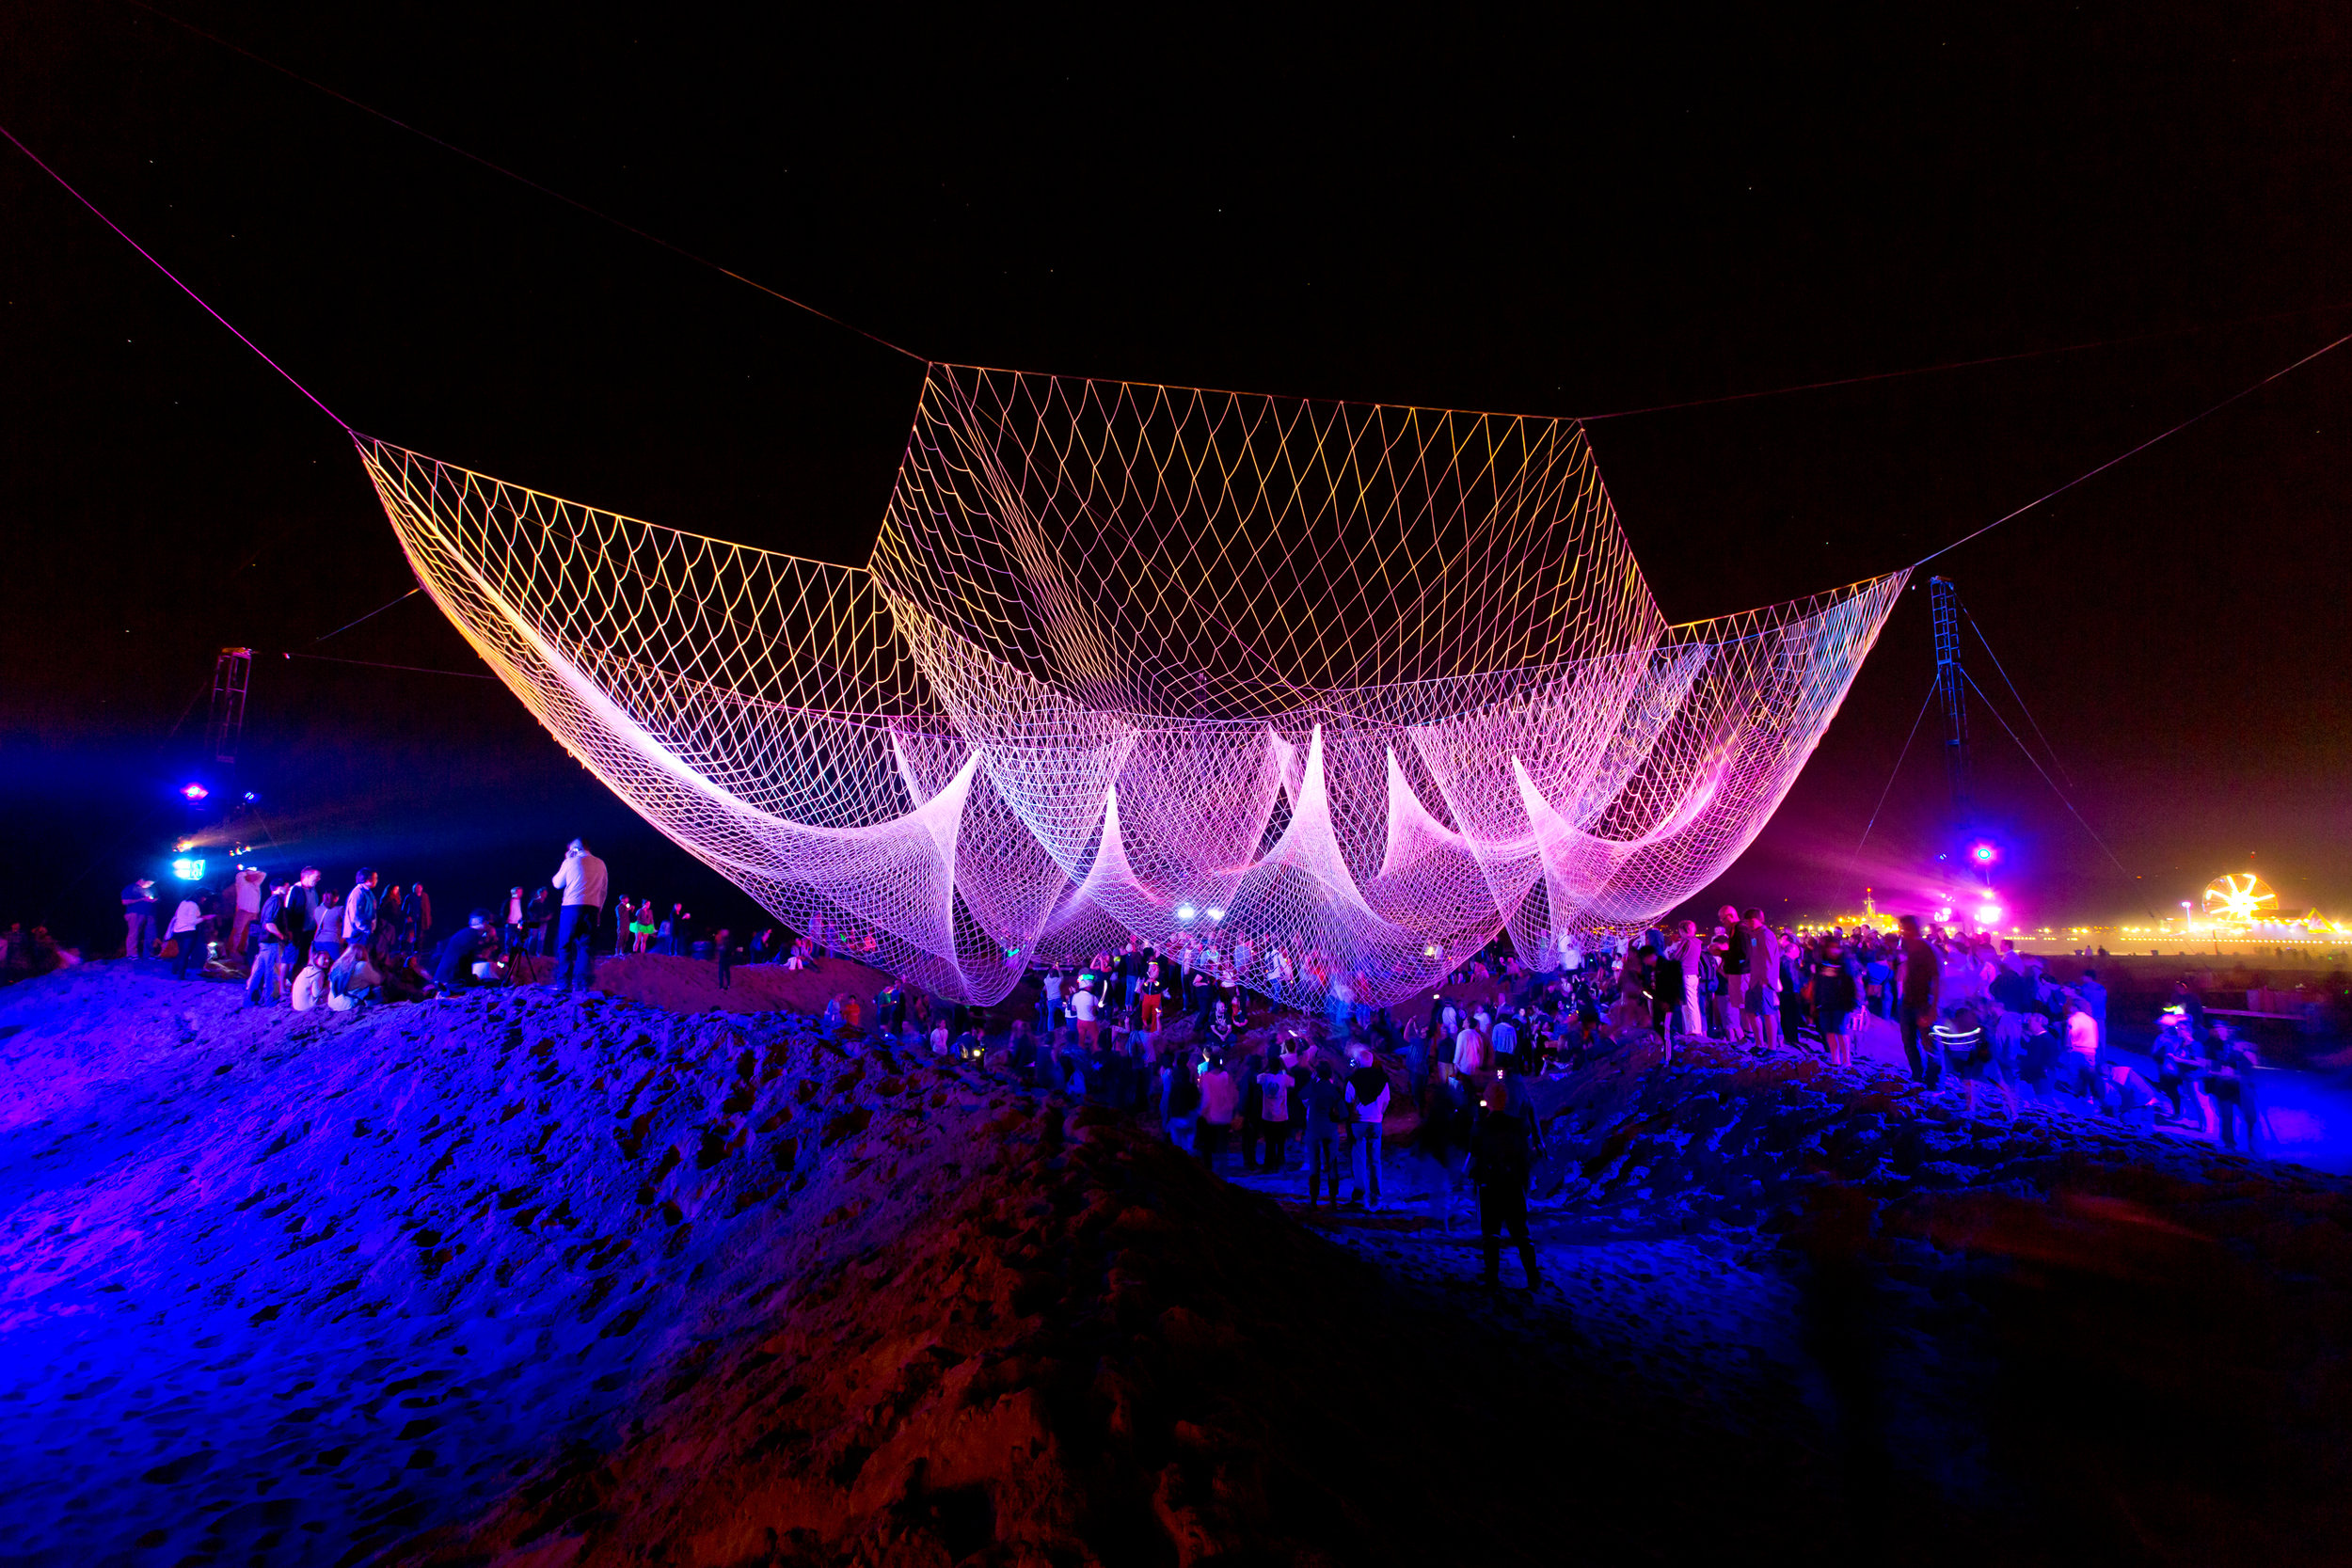 The Space Between Us by Janet Echelman for  Glow 2013   Photo: William Short